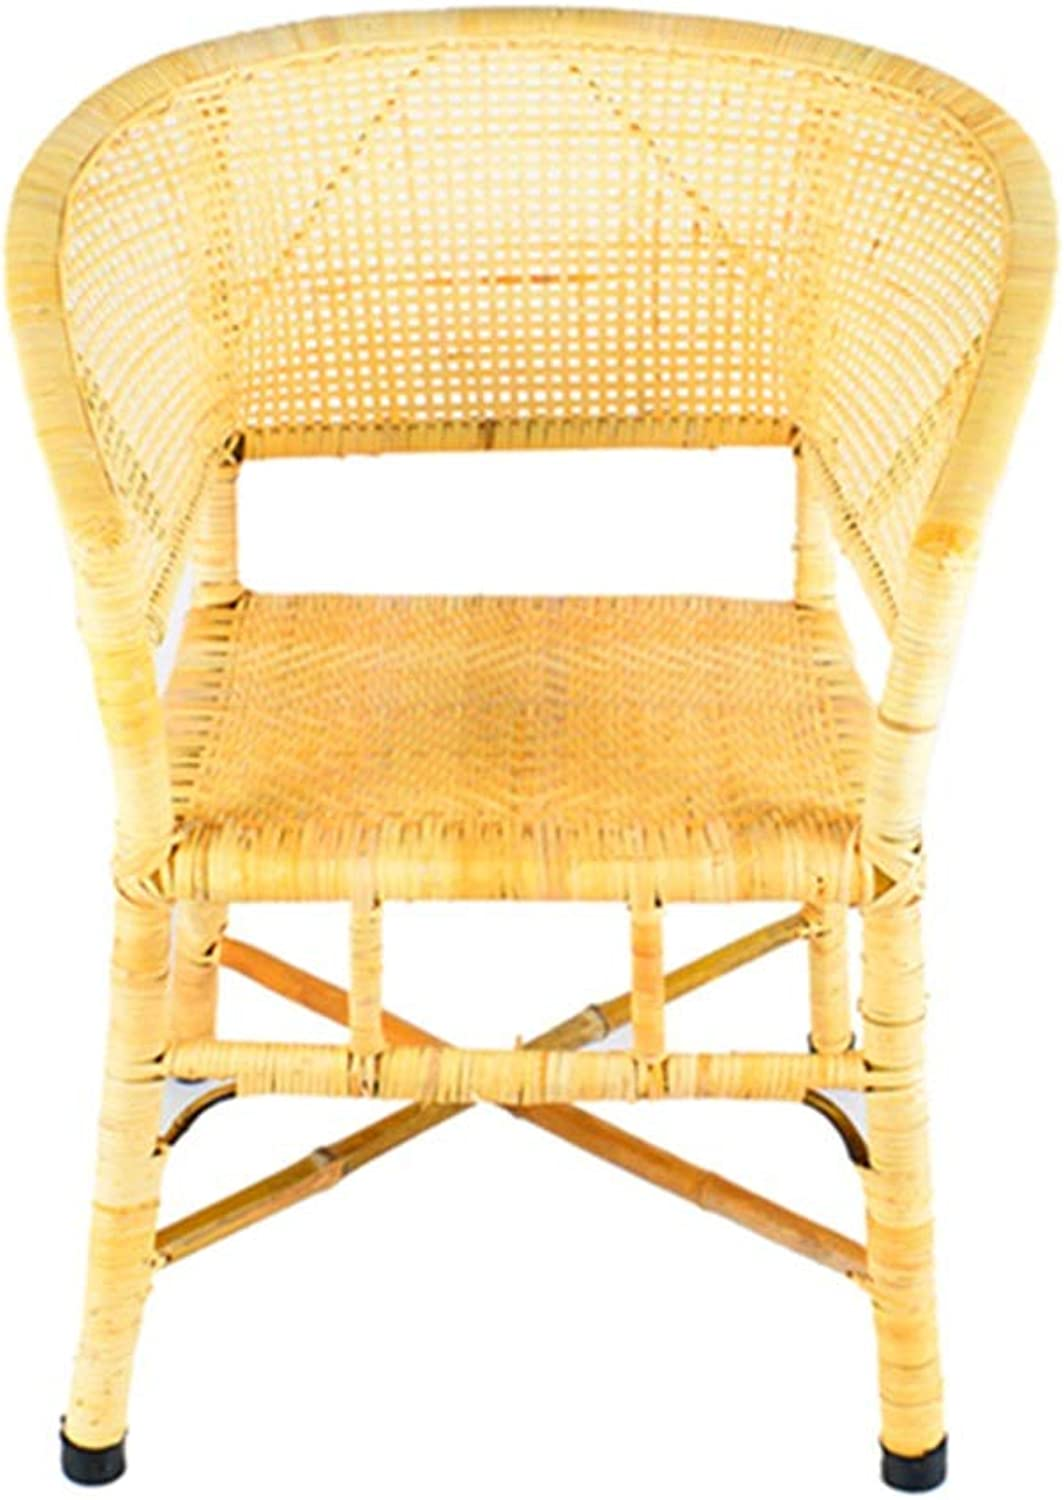 Folding Chair - Home Portable Chair Adult Chair (Size   45  85cm)